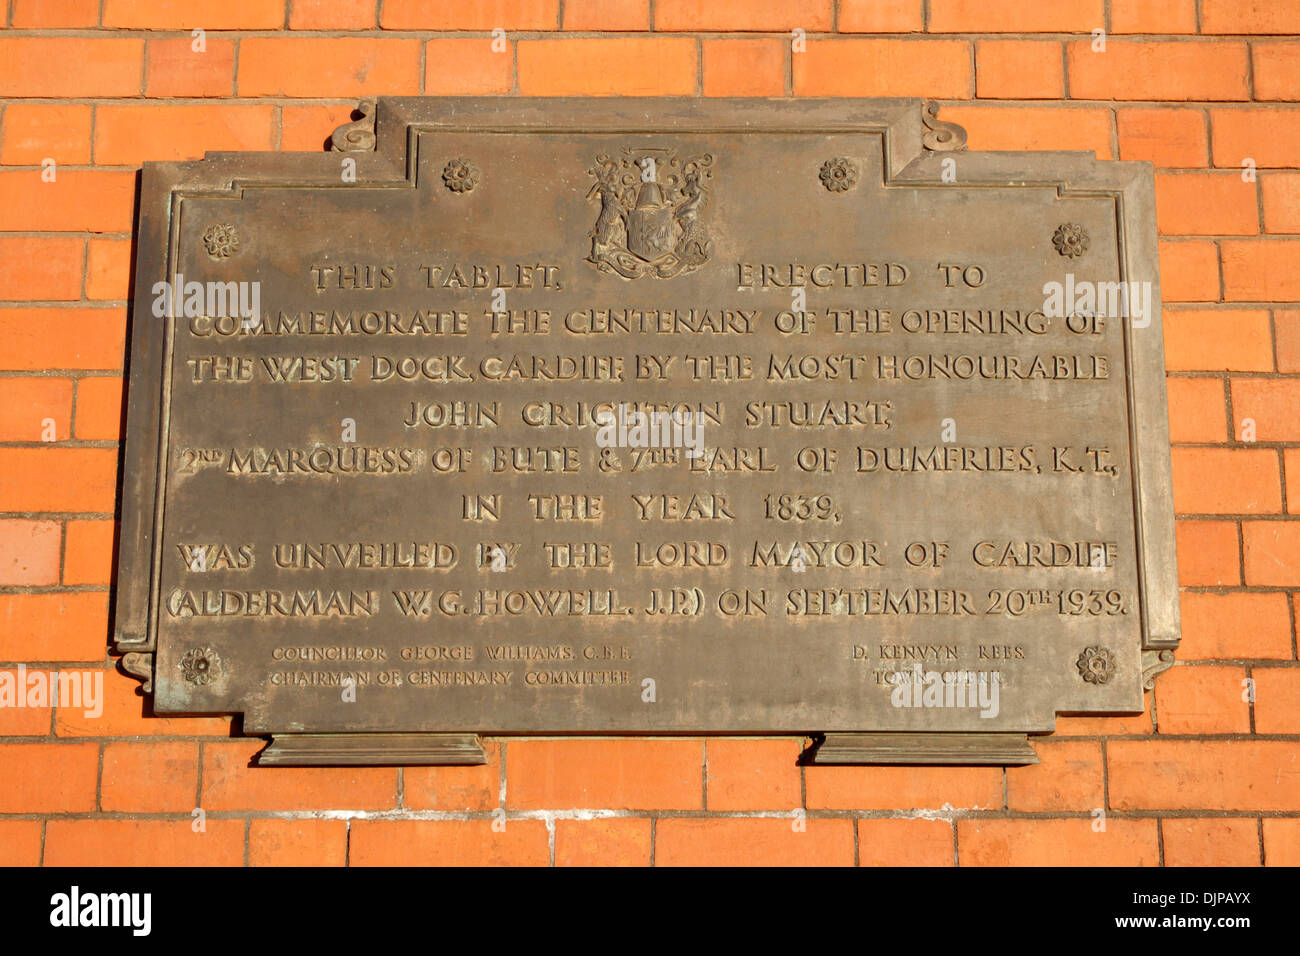 A plaque commerating the 100th anniversary of the opening of the Cardiff west dock on the Pierhead building Stock Photo